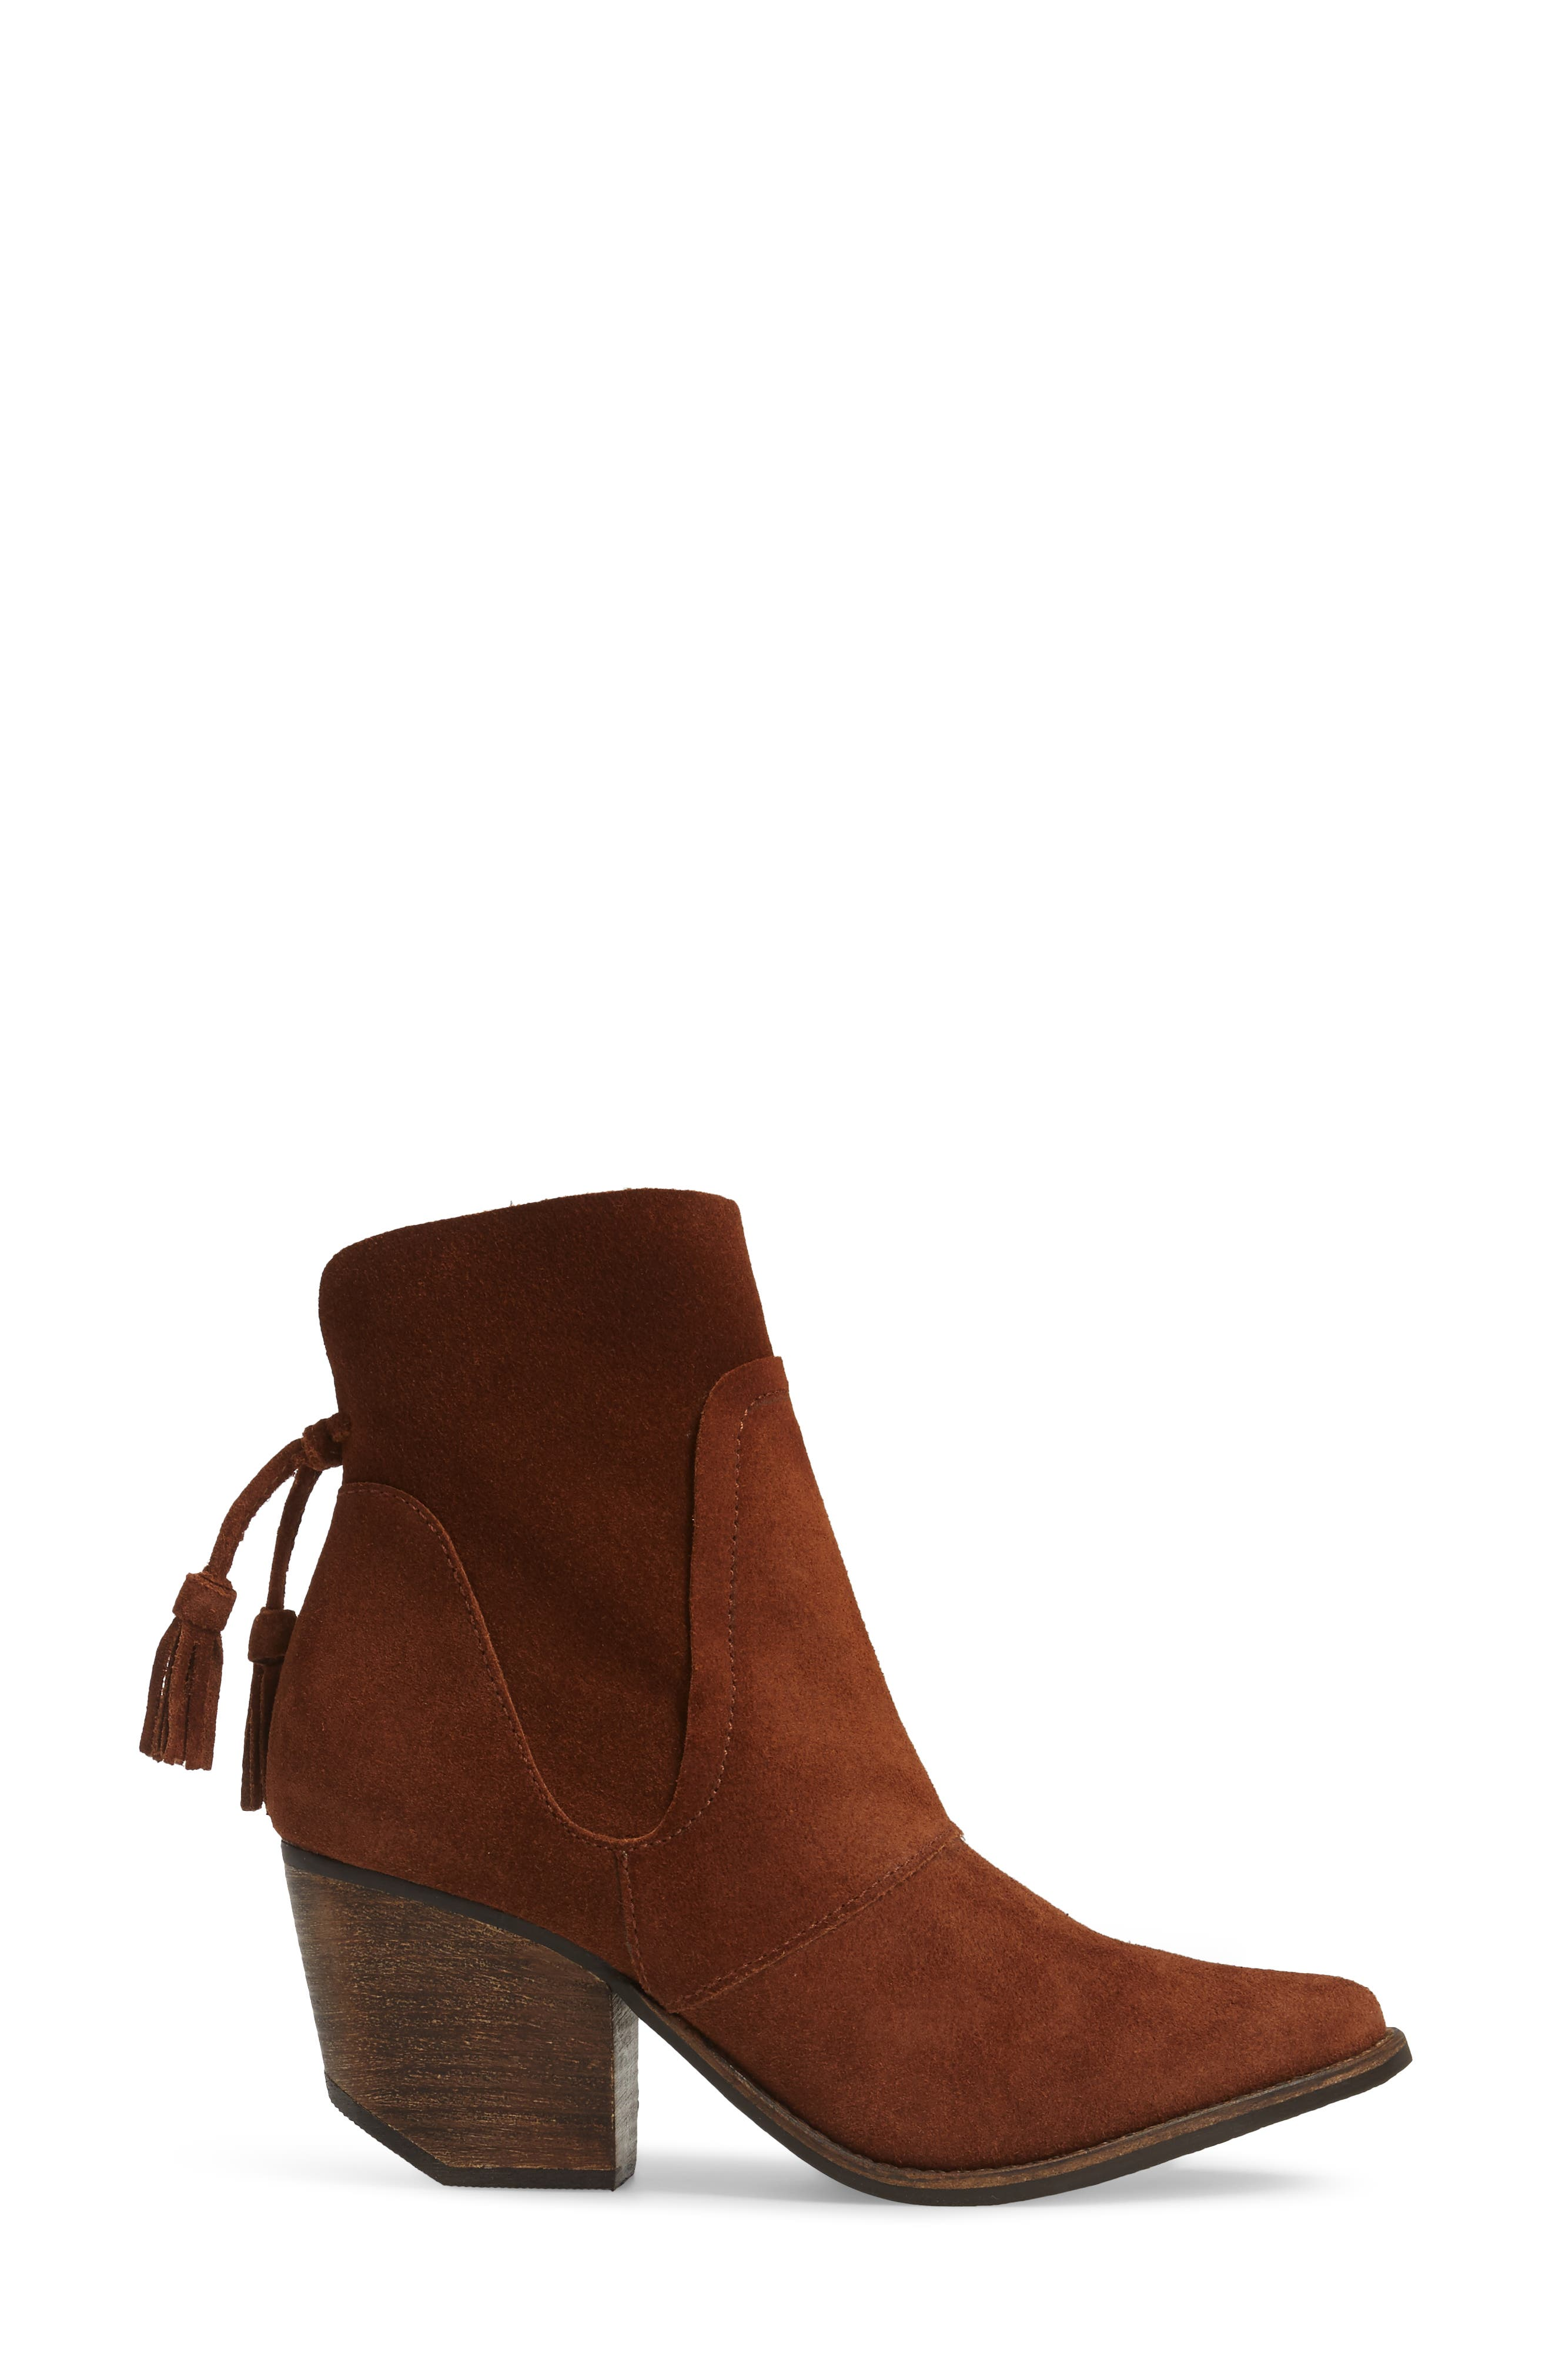 Laney Notched Heel Bootie,                             Alternate thumbnail 11, color,